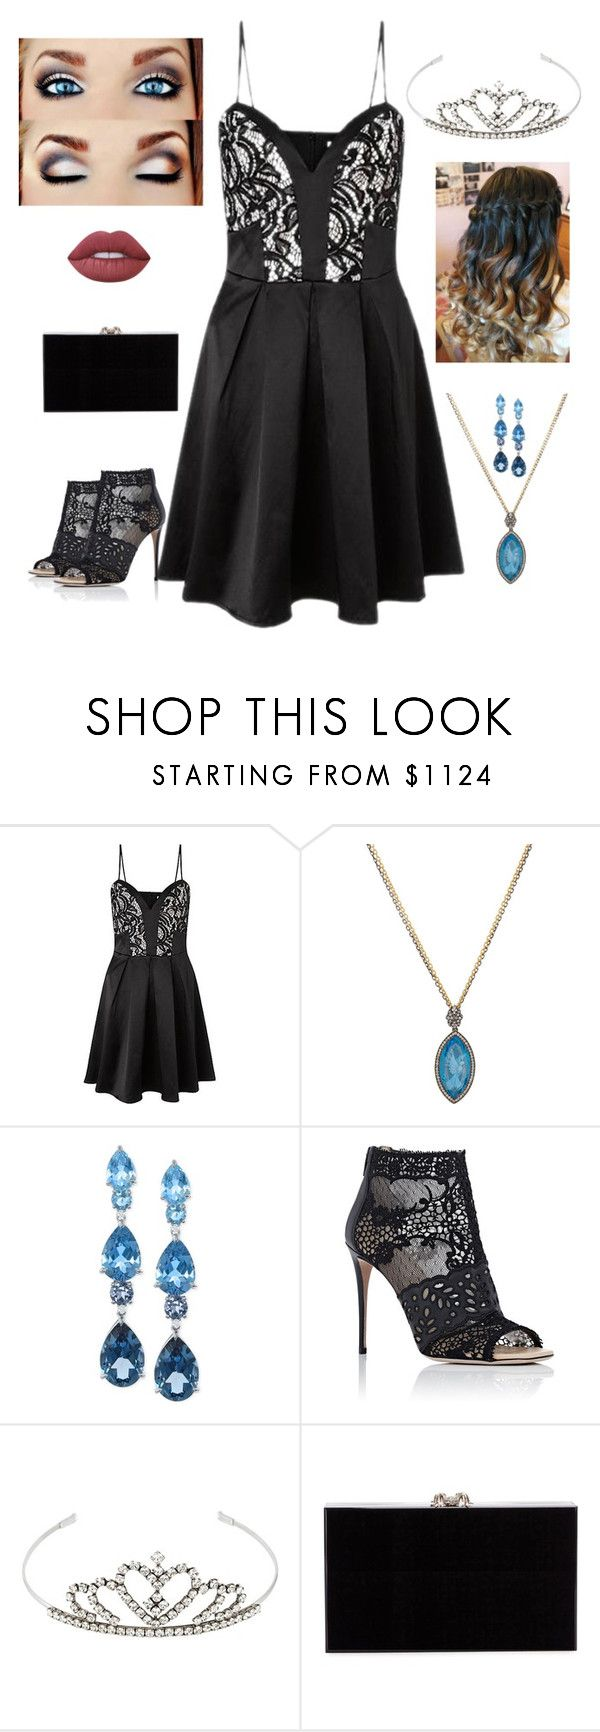 """""""Expensive Prom"""" by gracenickel on Polyvore featuring Lipsy, Sevan Biçakçi, LALI Jewels, Valentino, Yves Saint Laurent, Charlotte Olympia, Lime Crime, Prom, Elegant and expensive"""